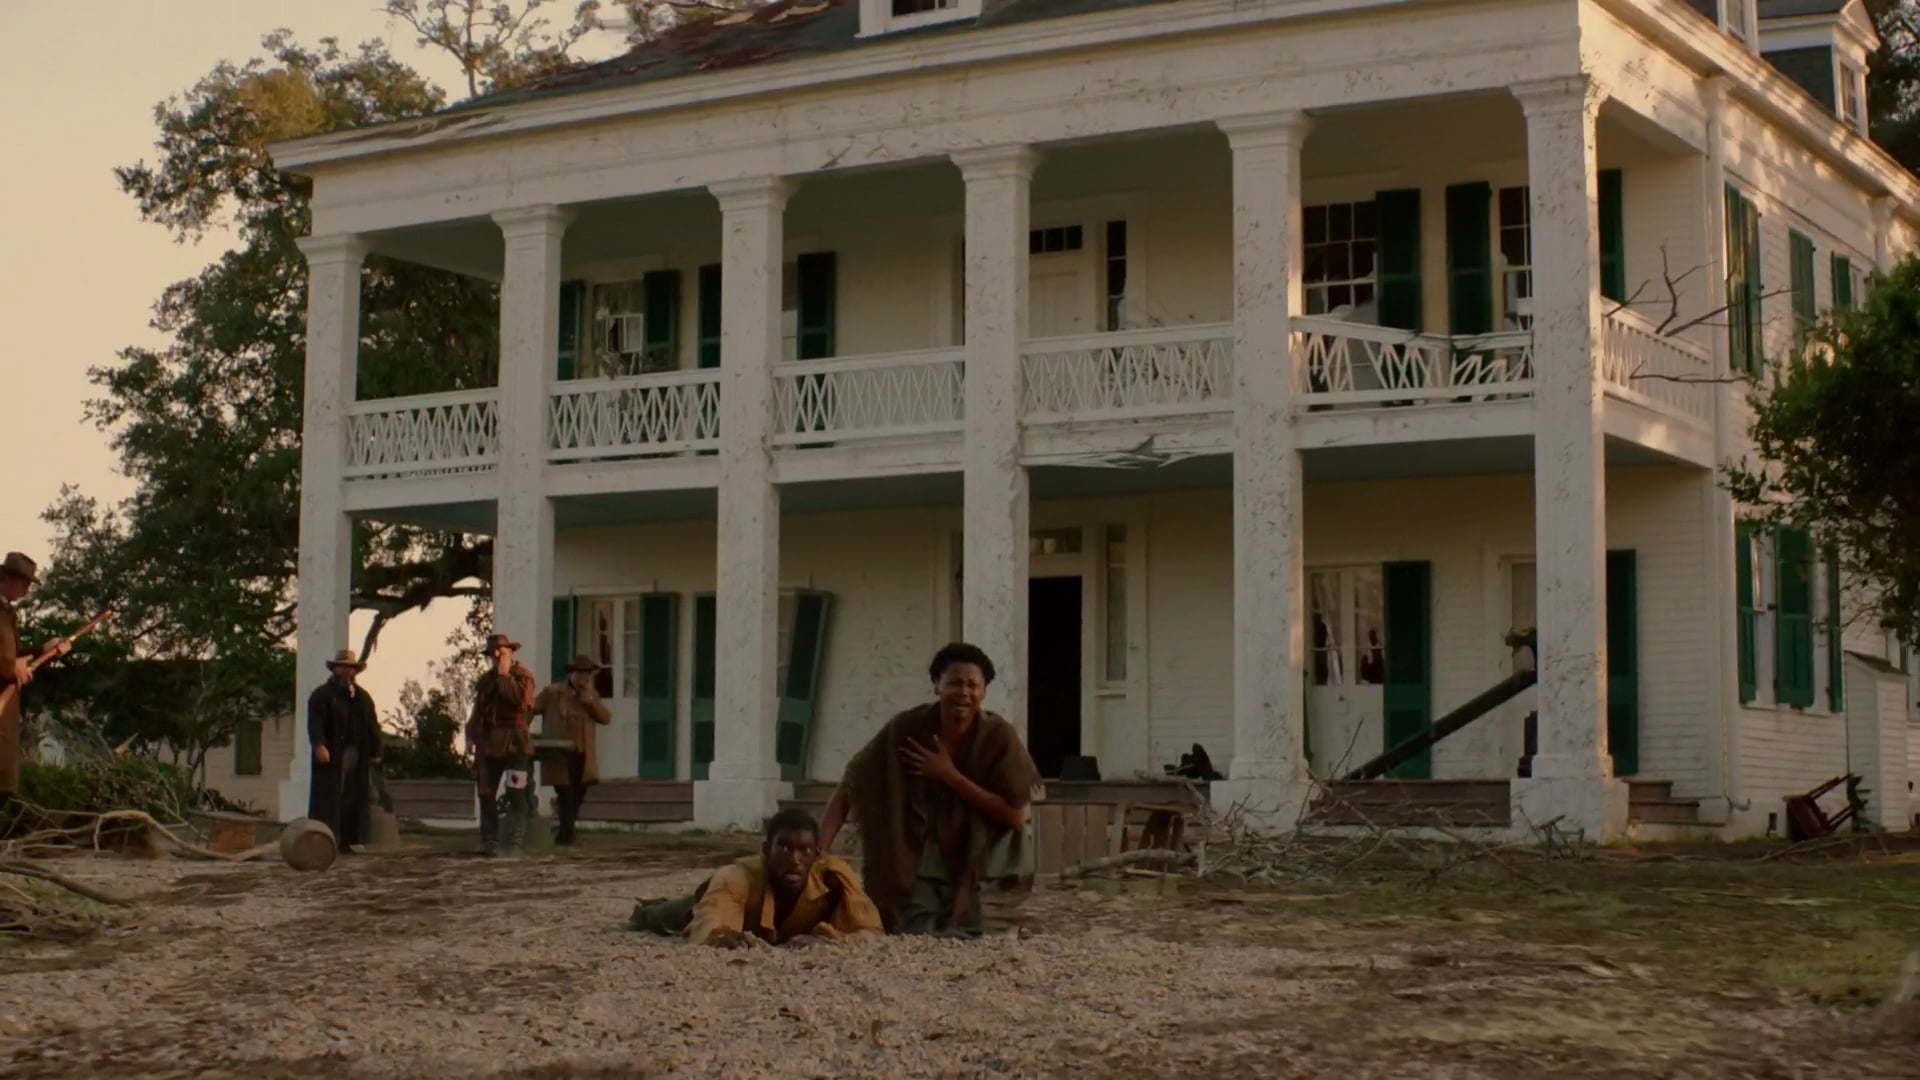 A+E / History Channel Roots Miniseries House Damage VFX